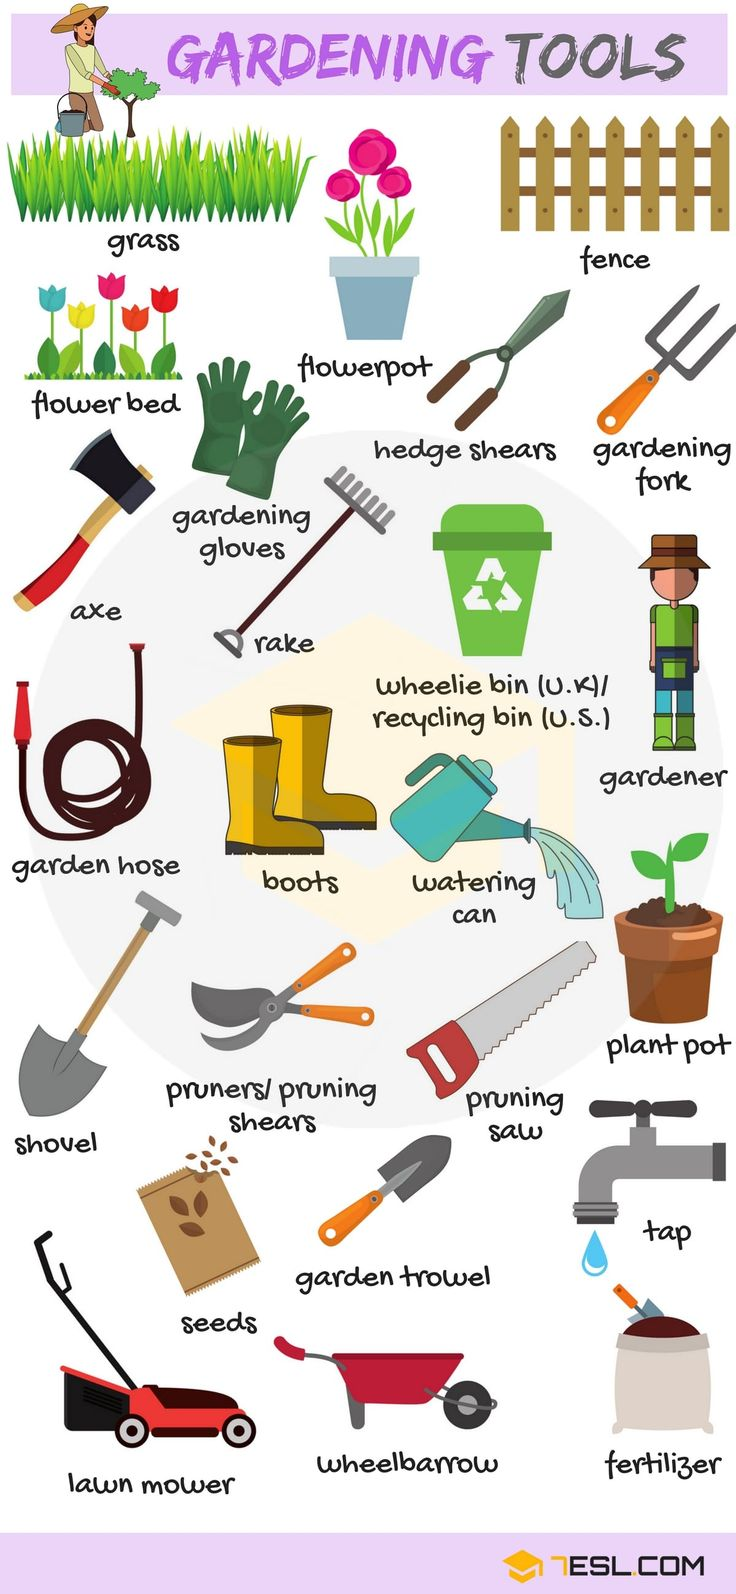 Gardening tools vocabulary in english gardening tools for Gardening tools vocabulary